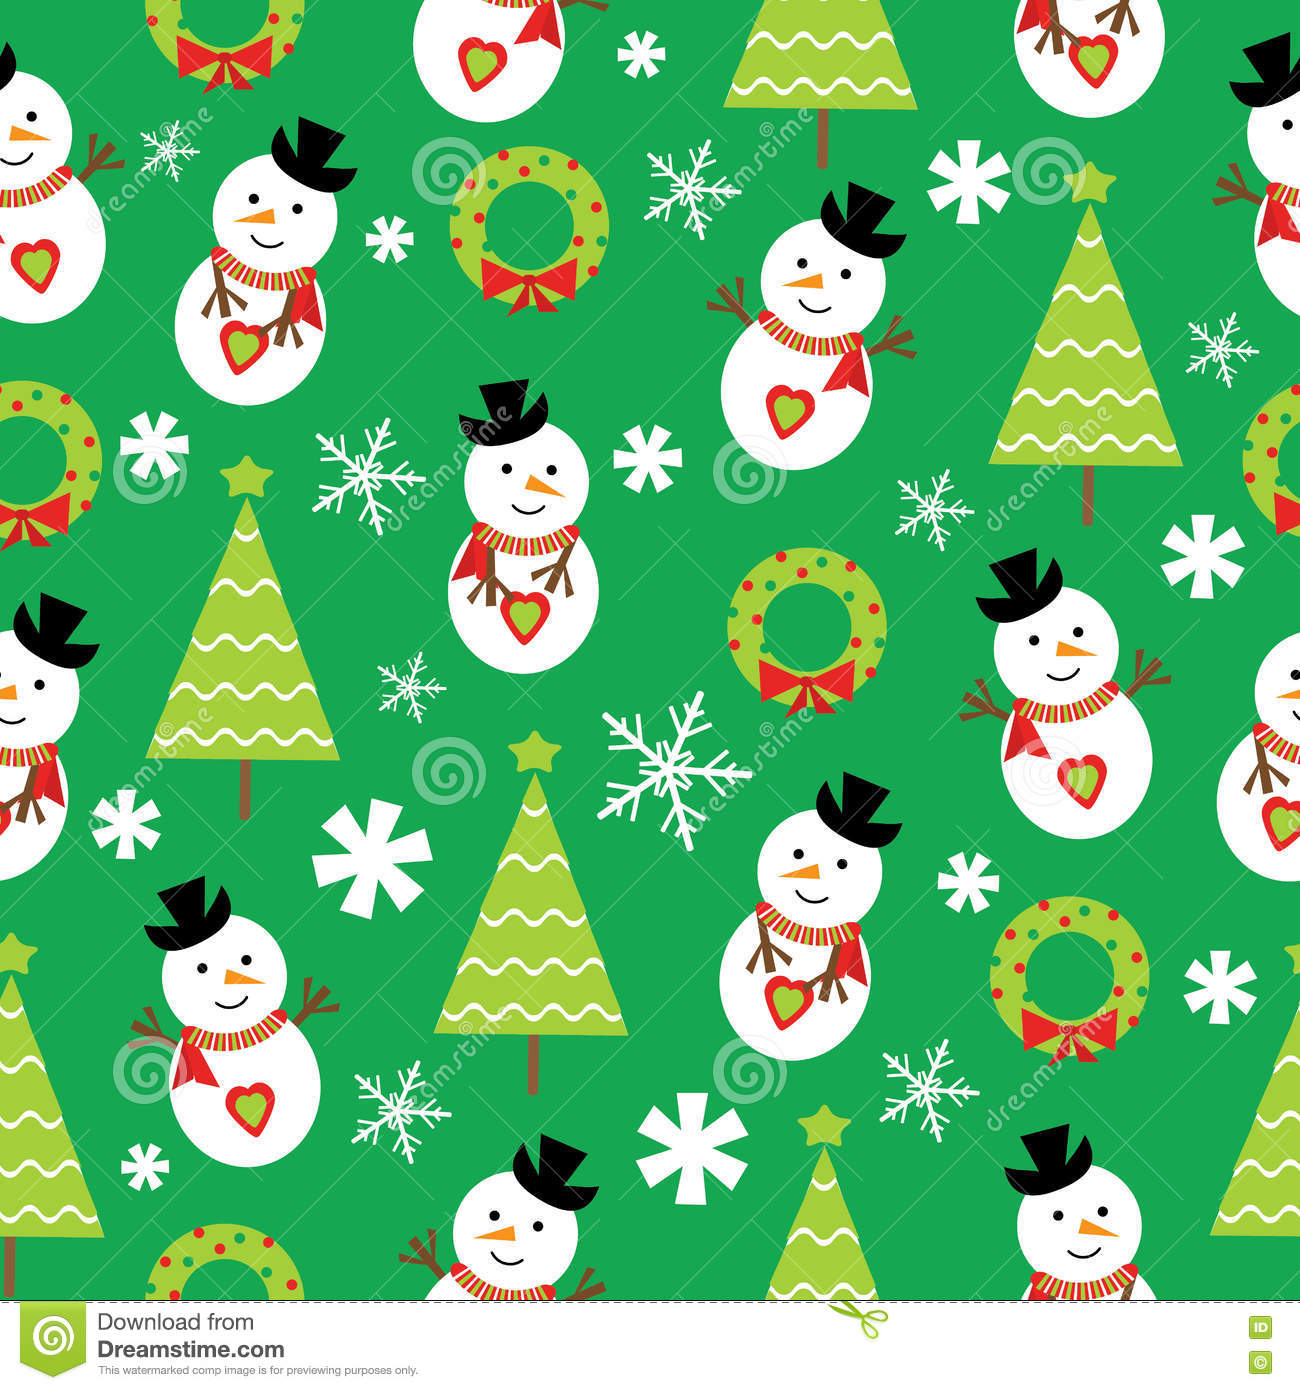 seamless background christmas illustration cute snowman xmas tree green background suitable wallpaper children 80620676